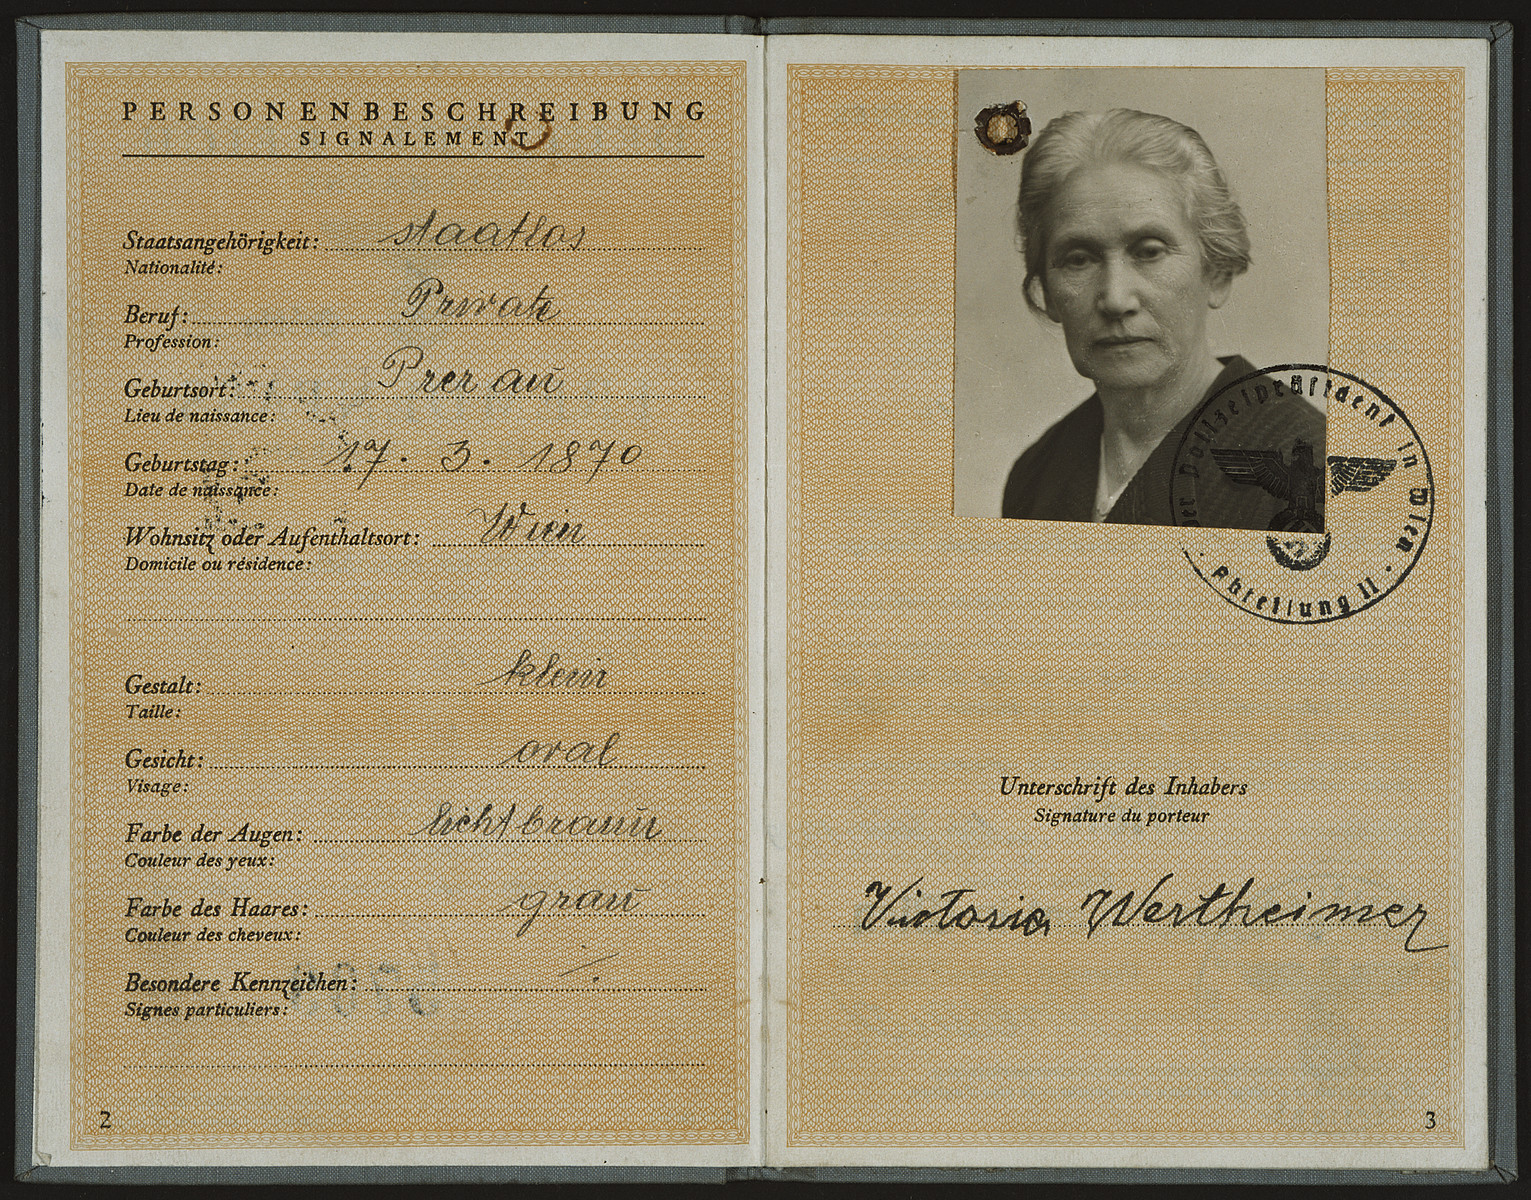 "Identification paper issued to Victoria Wertheimar (Siegmund Sobel's mother-in-law) in Vienna Austria and stamped with a Nazi seal declaring that her nationality is ""stateless"".  Mrs. Wertheimar later escaped Austria and immigrated to Shanghai."